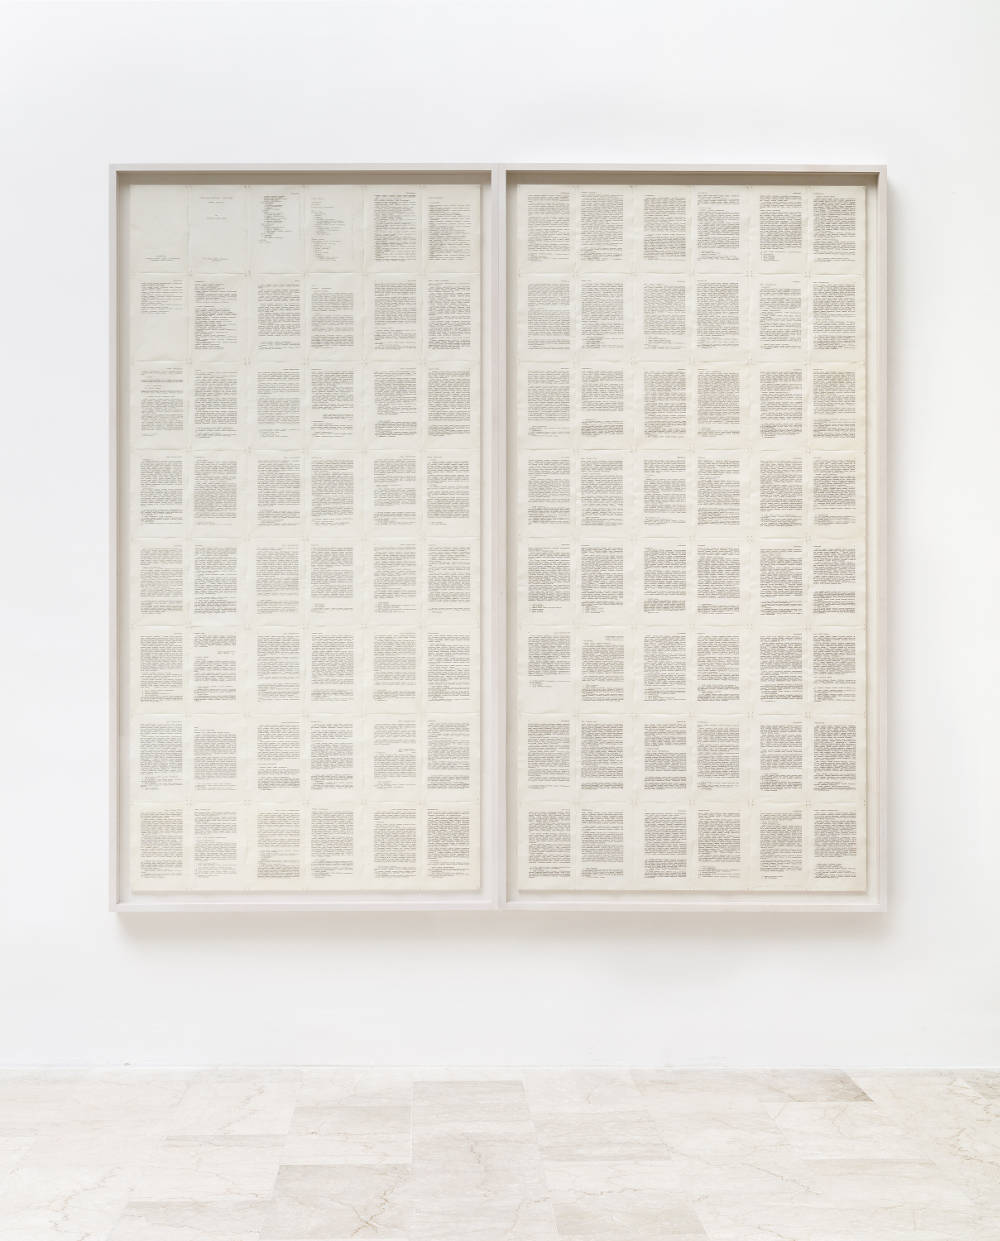 Irma Blank (b. 1934), Trascrizioni, Della critica I e II, 1975. Indian ink on parchment like paper, 96 pages, diptych. Each: 9 1/4 x 6 1/8 in. (23.5 x 15.5 cm) Overall: 74 1/8 x 73 1/4 in. (188 x 186 cm.) Courtesy of Luxembourg & Dayan, New York and London